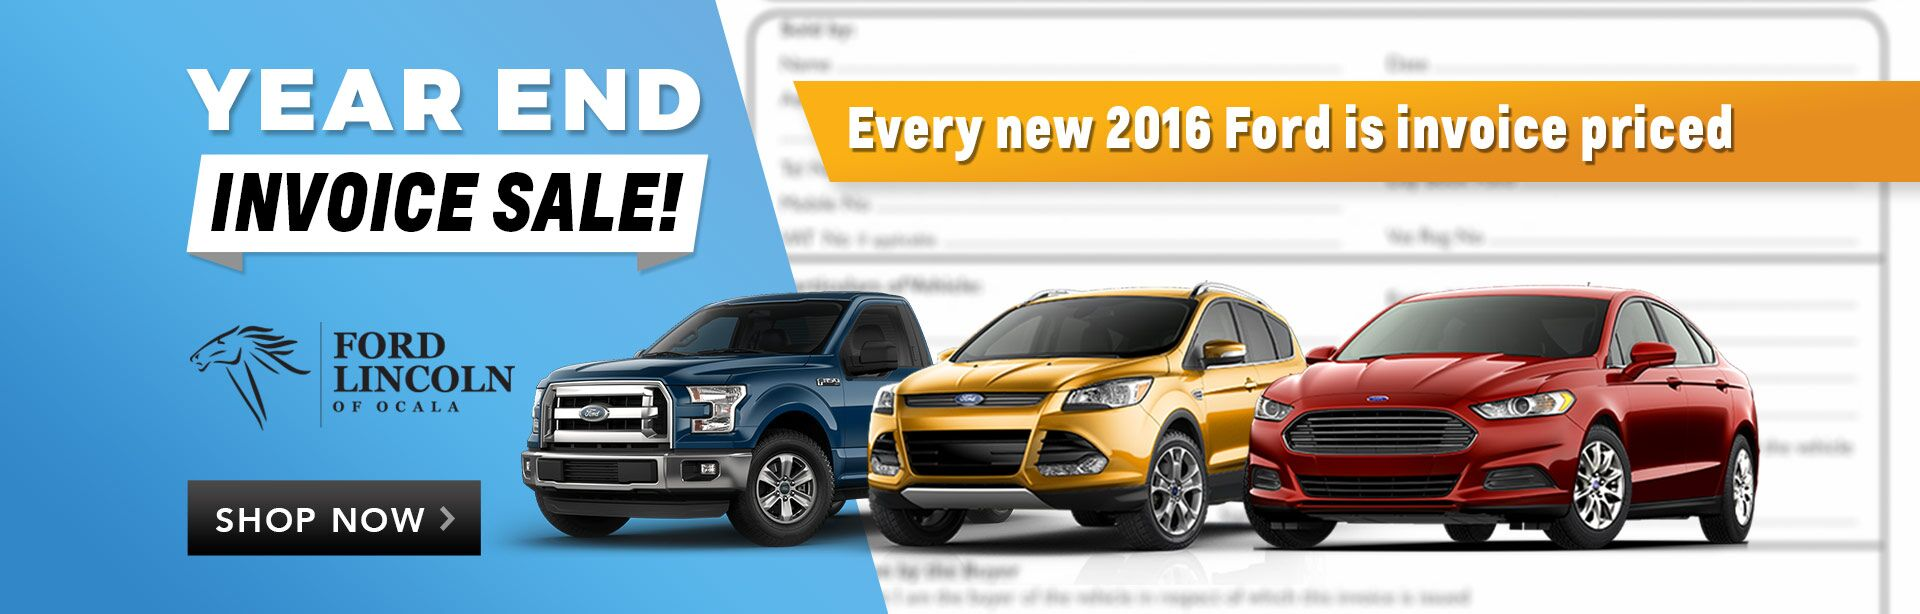 Ford Truck Dealers Near Me >> Year End Sale | Ford of Ocala